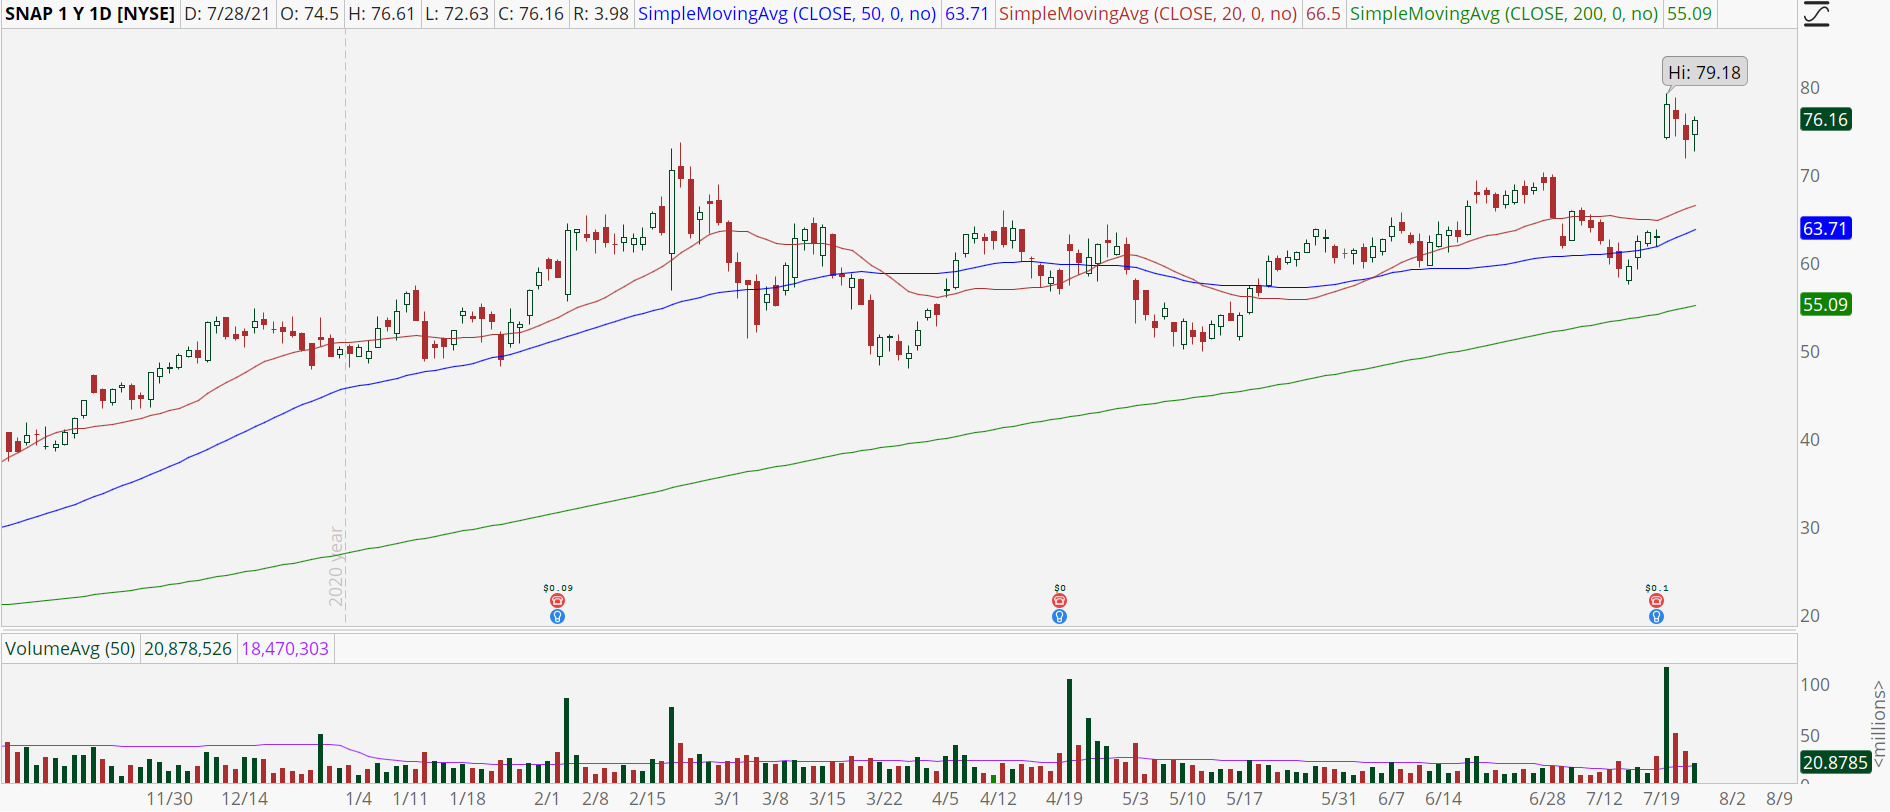 Snap Inc (SNAP) stock chart with bull flag